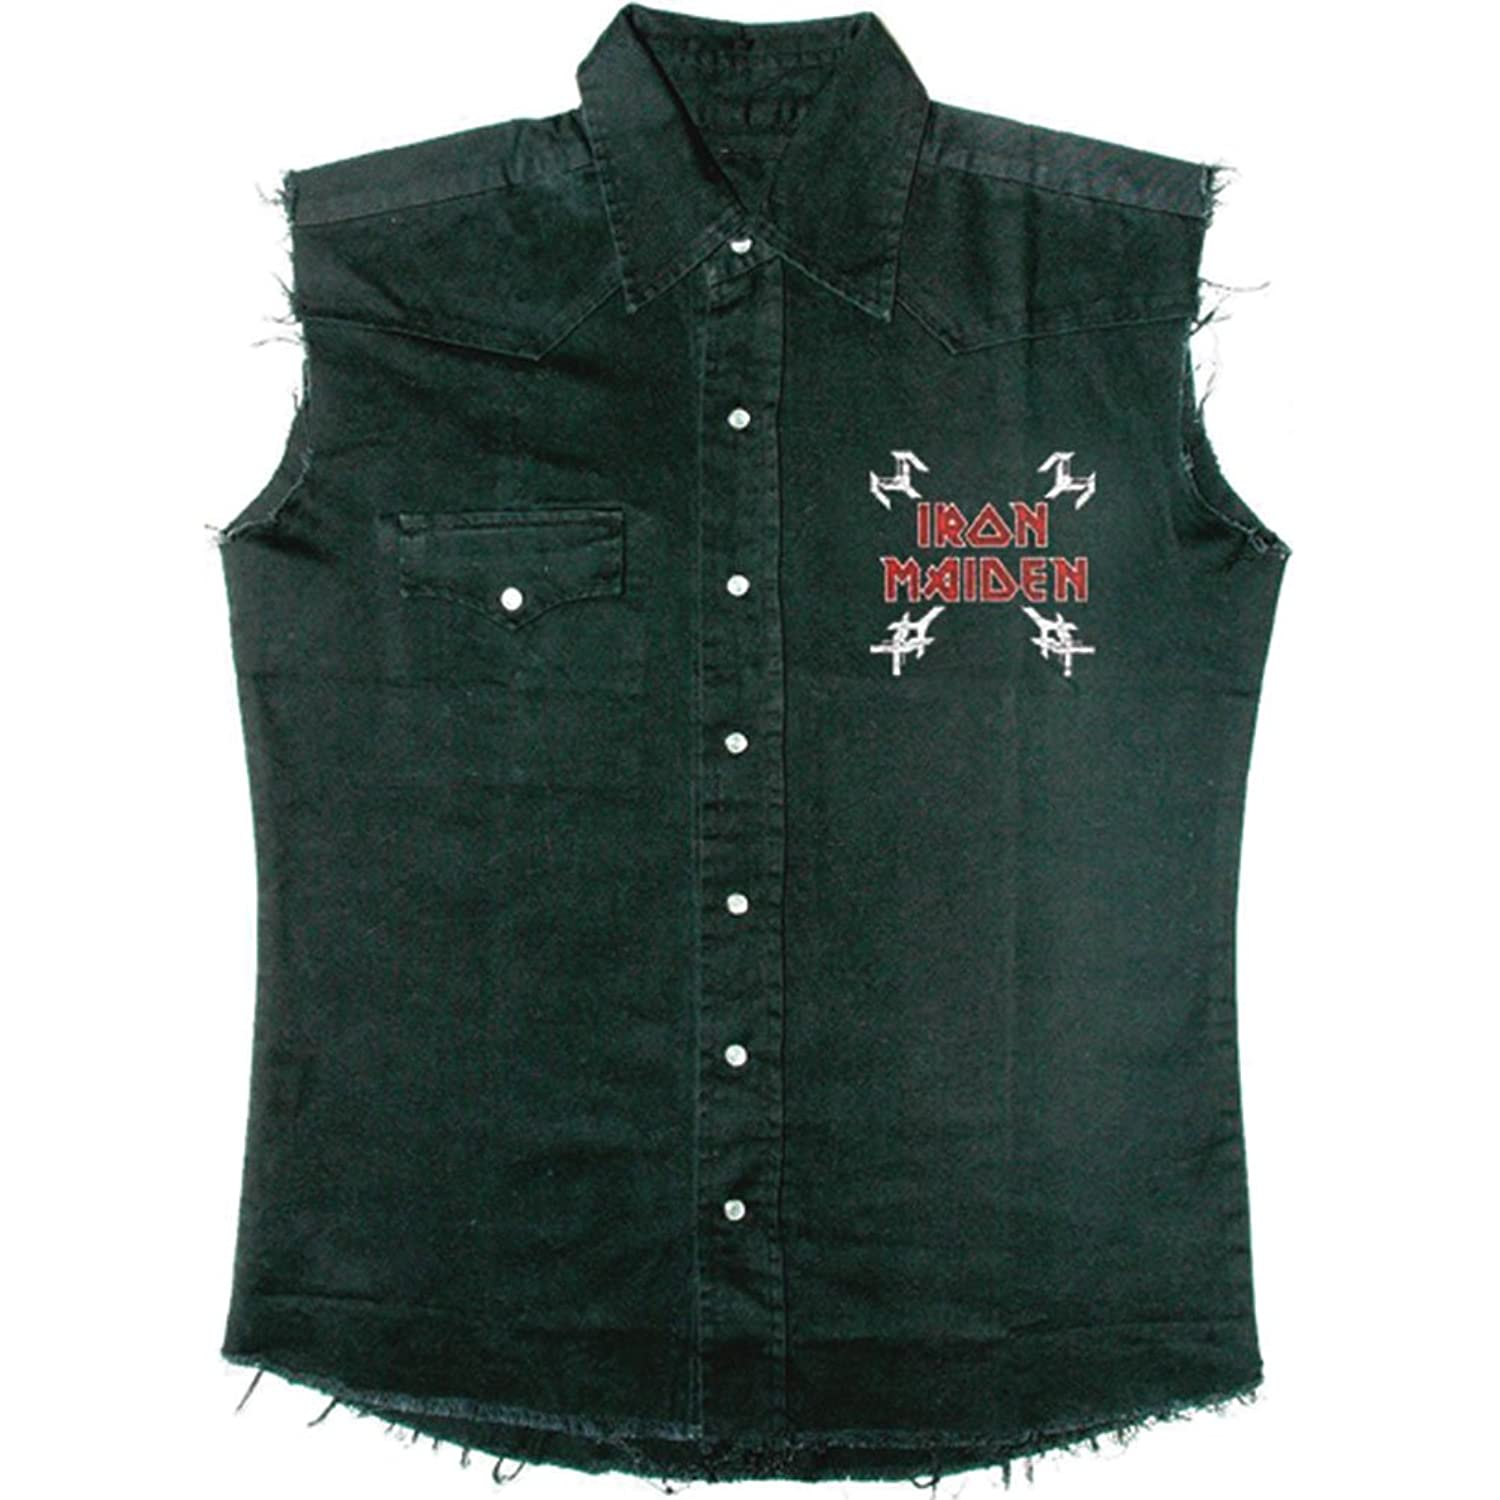 Iron Maiden Men's The Final Frontier Vintage Skull Work Shirt Black cd диск iron maiden the final frontier 1 cd